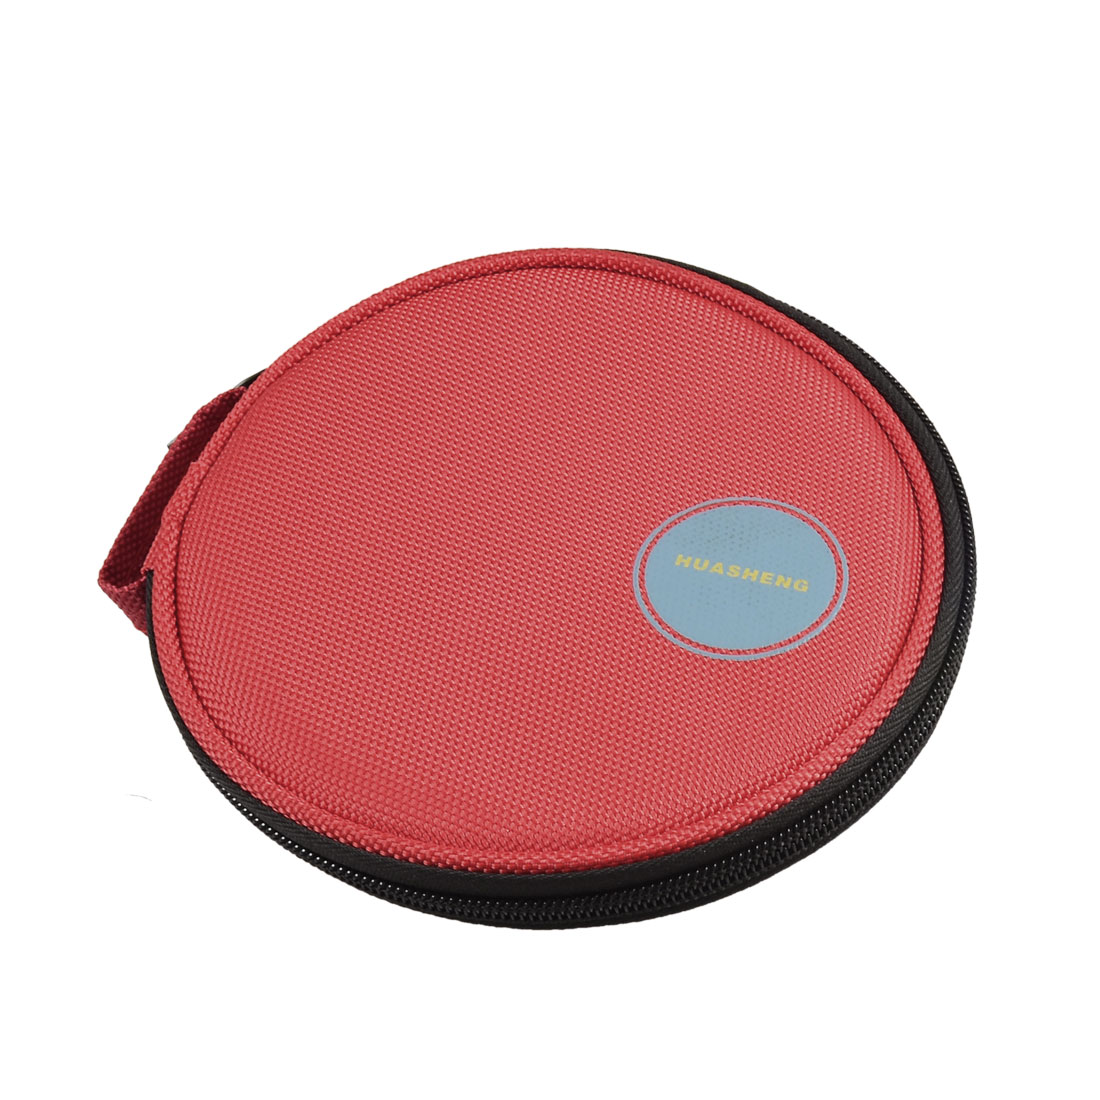 Hand Carrying DVD CD Discs Holder Pocket Bag Organizer Red